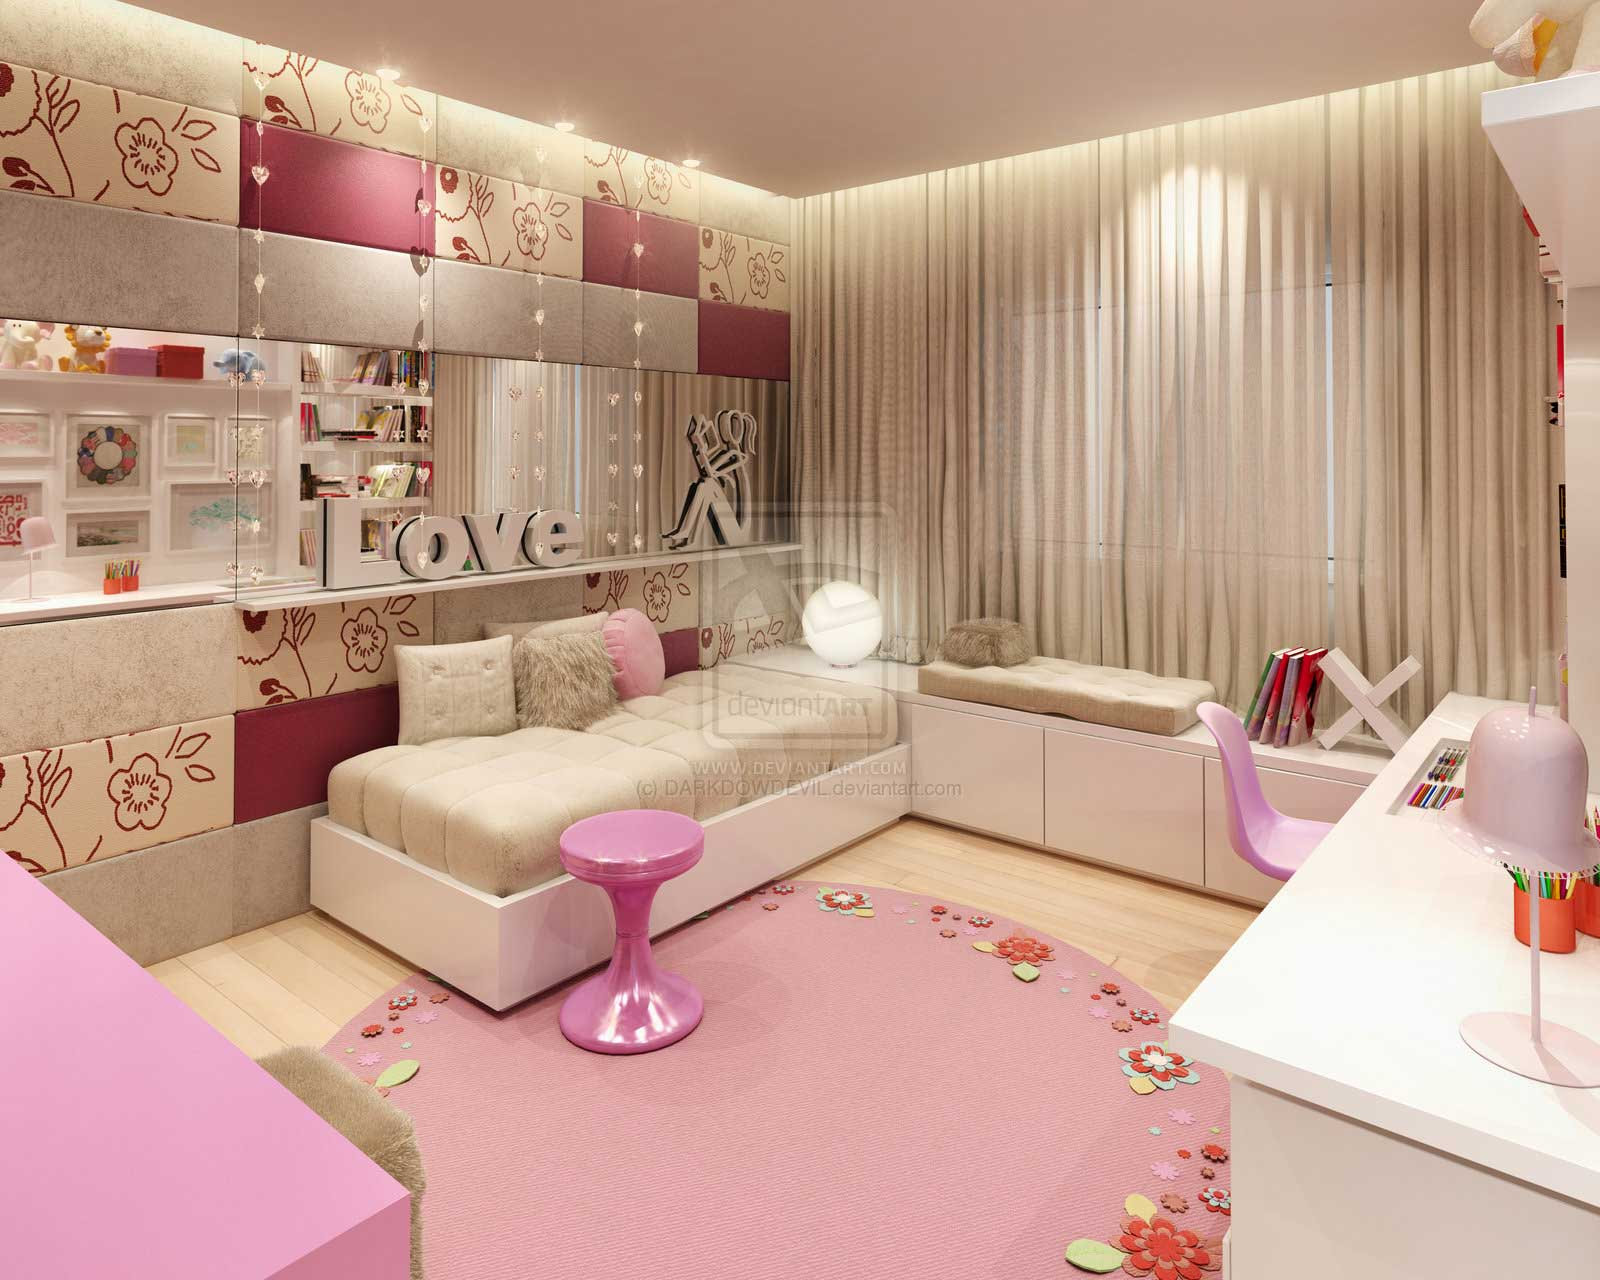 Comfort pink girl bedroom by darkdowdevil interior for Cool girl bedroom ideas teenagers